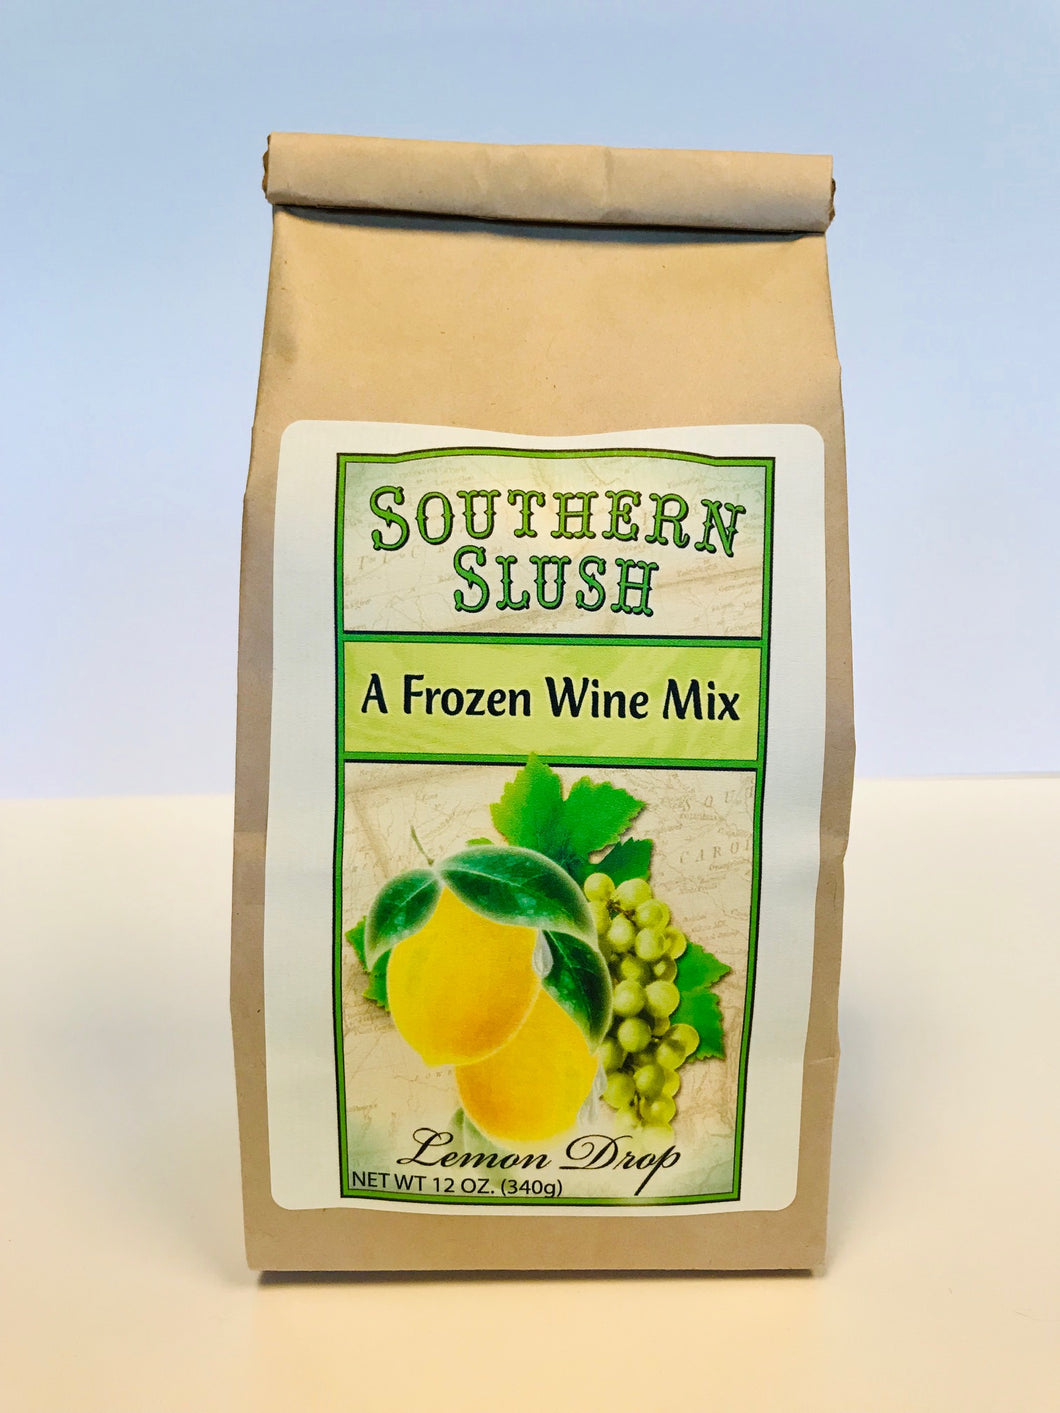 Southern Slush Tropical Lemon Drop Frozen Wine Mix Drink